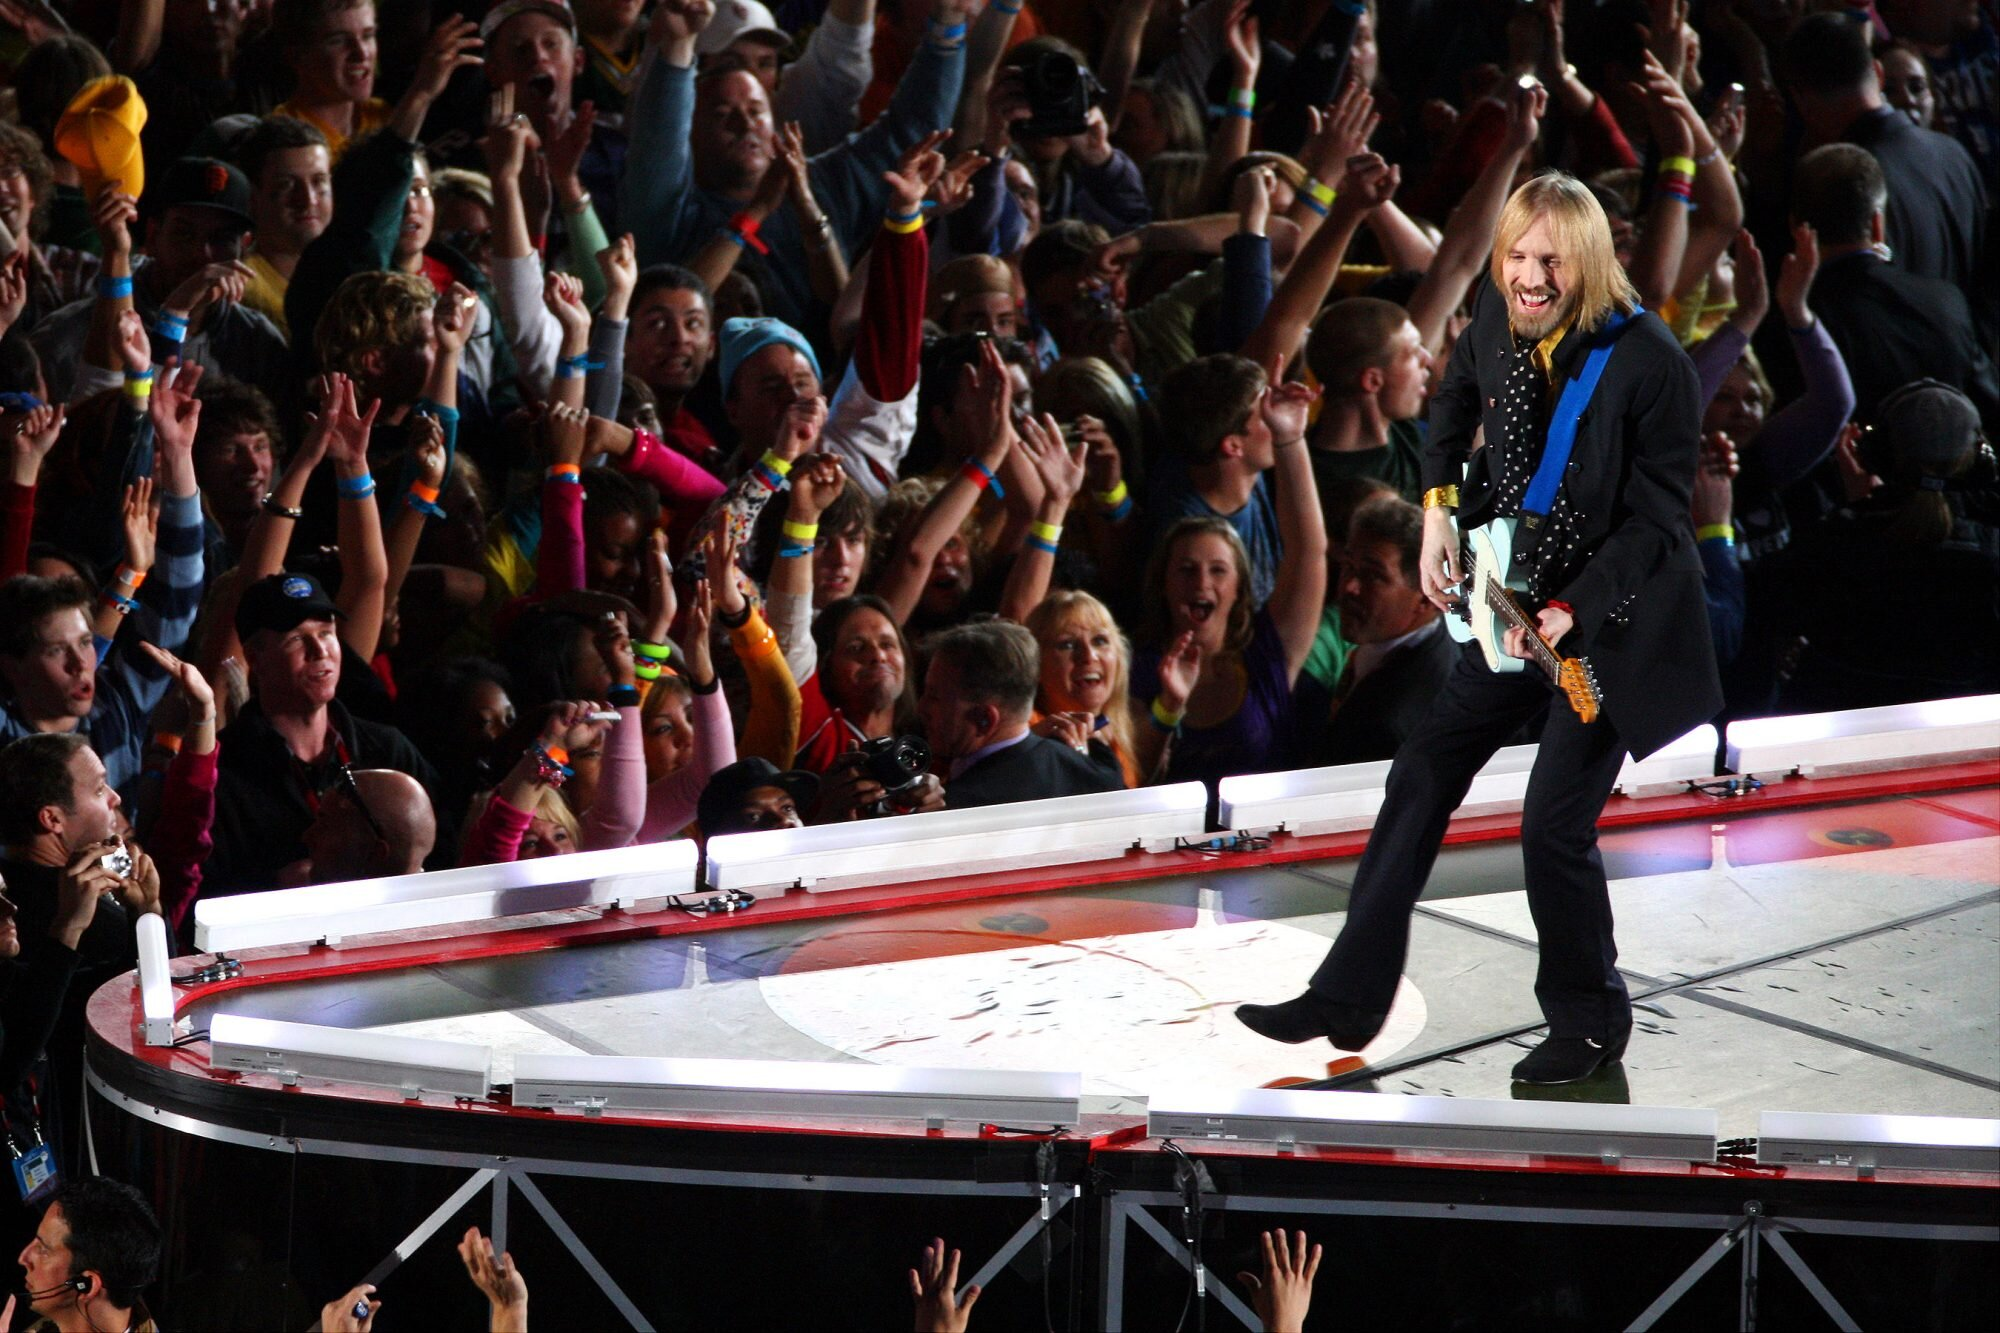 Tom Petty performs with his band Tom Petty and the Heartbrea